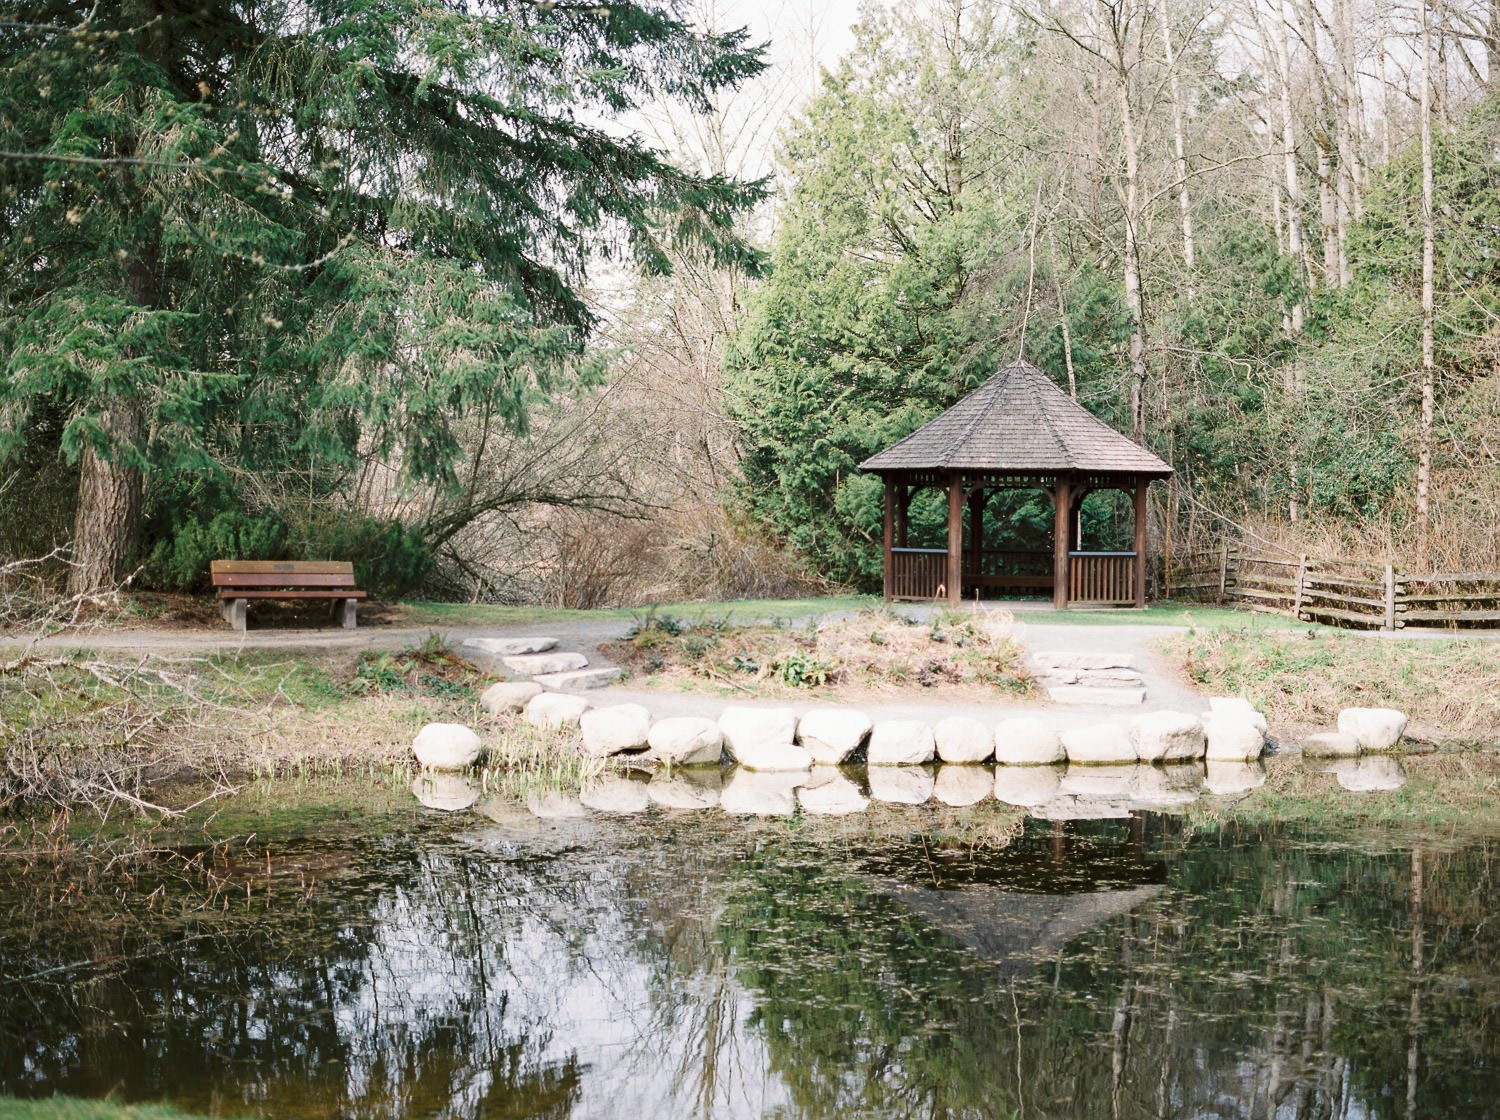 Gazebo and pond at Campbell Valley Park